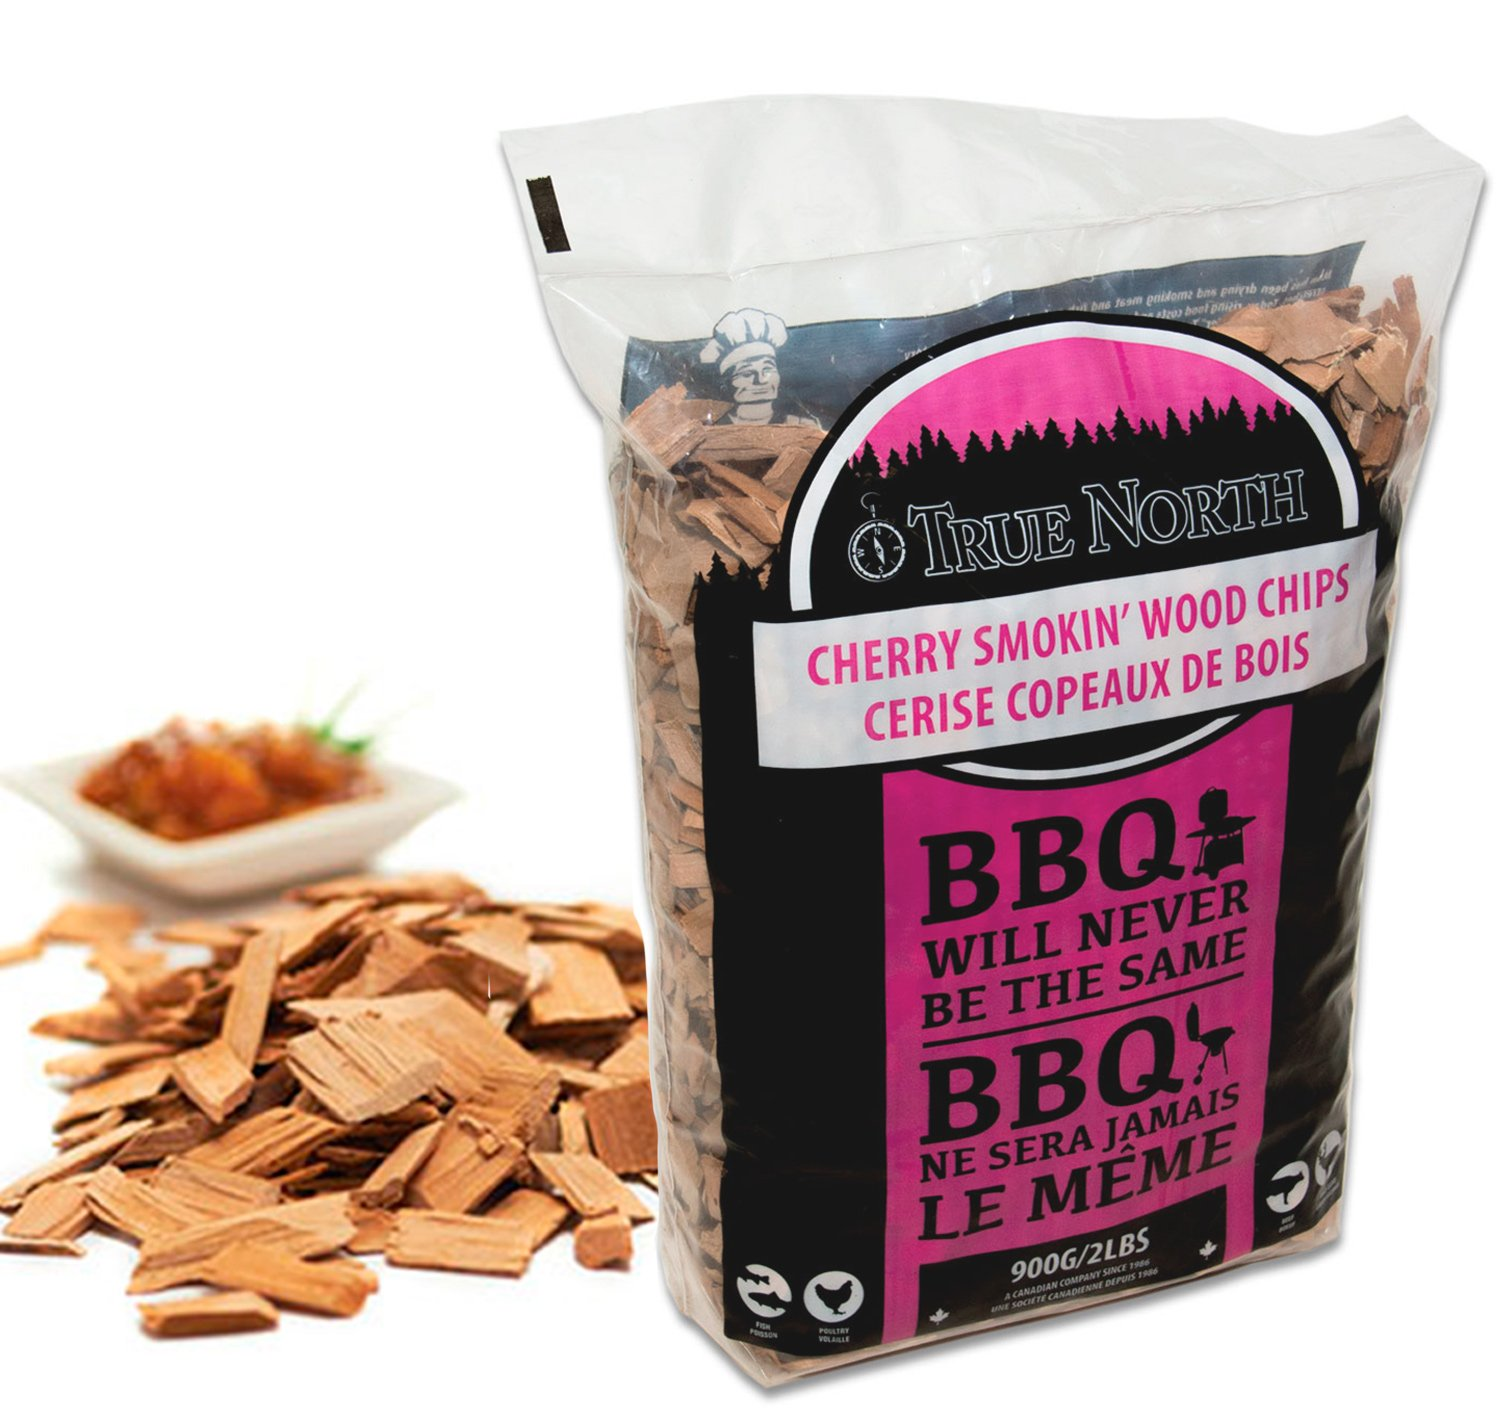 Canadian Pure and Simple Cherry smoking/smoker wood chips - for Smokers, BBQ's, Ovens, Smoking tins : 900g BBQ's